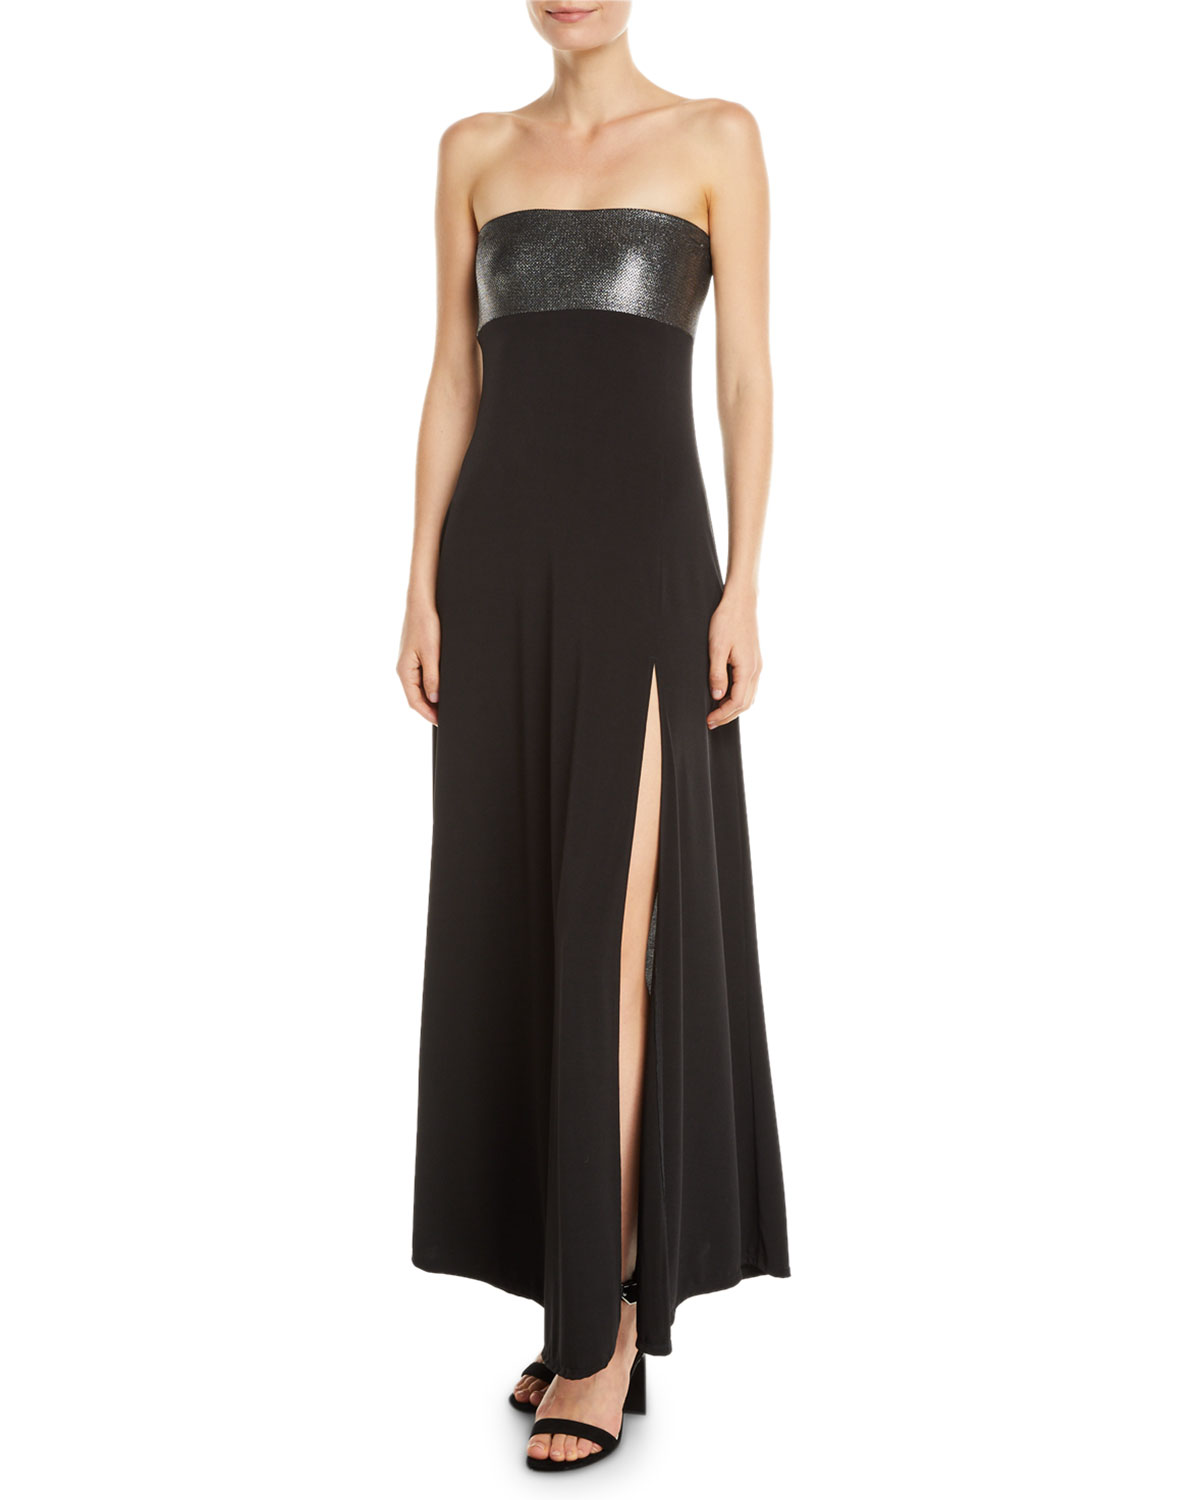 MARIE FRANCE VAN DAMME Strapless Metallic Coverup Maxi Dress in Black